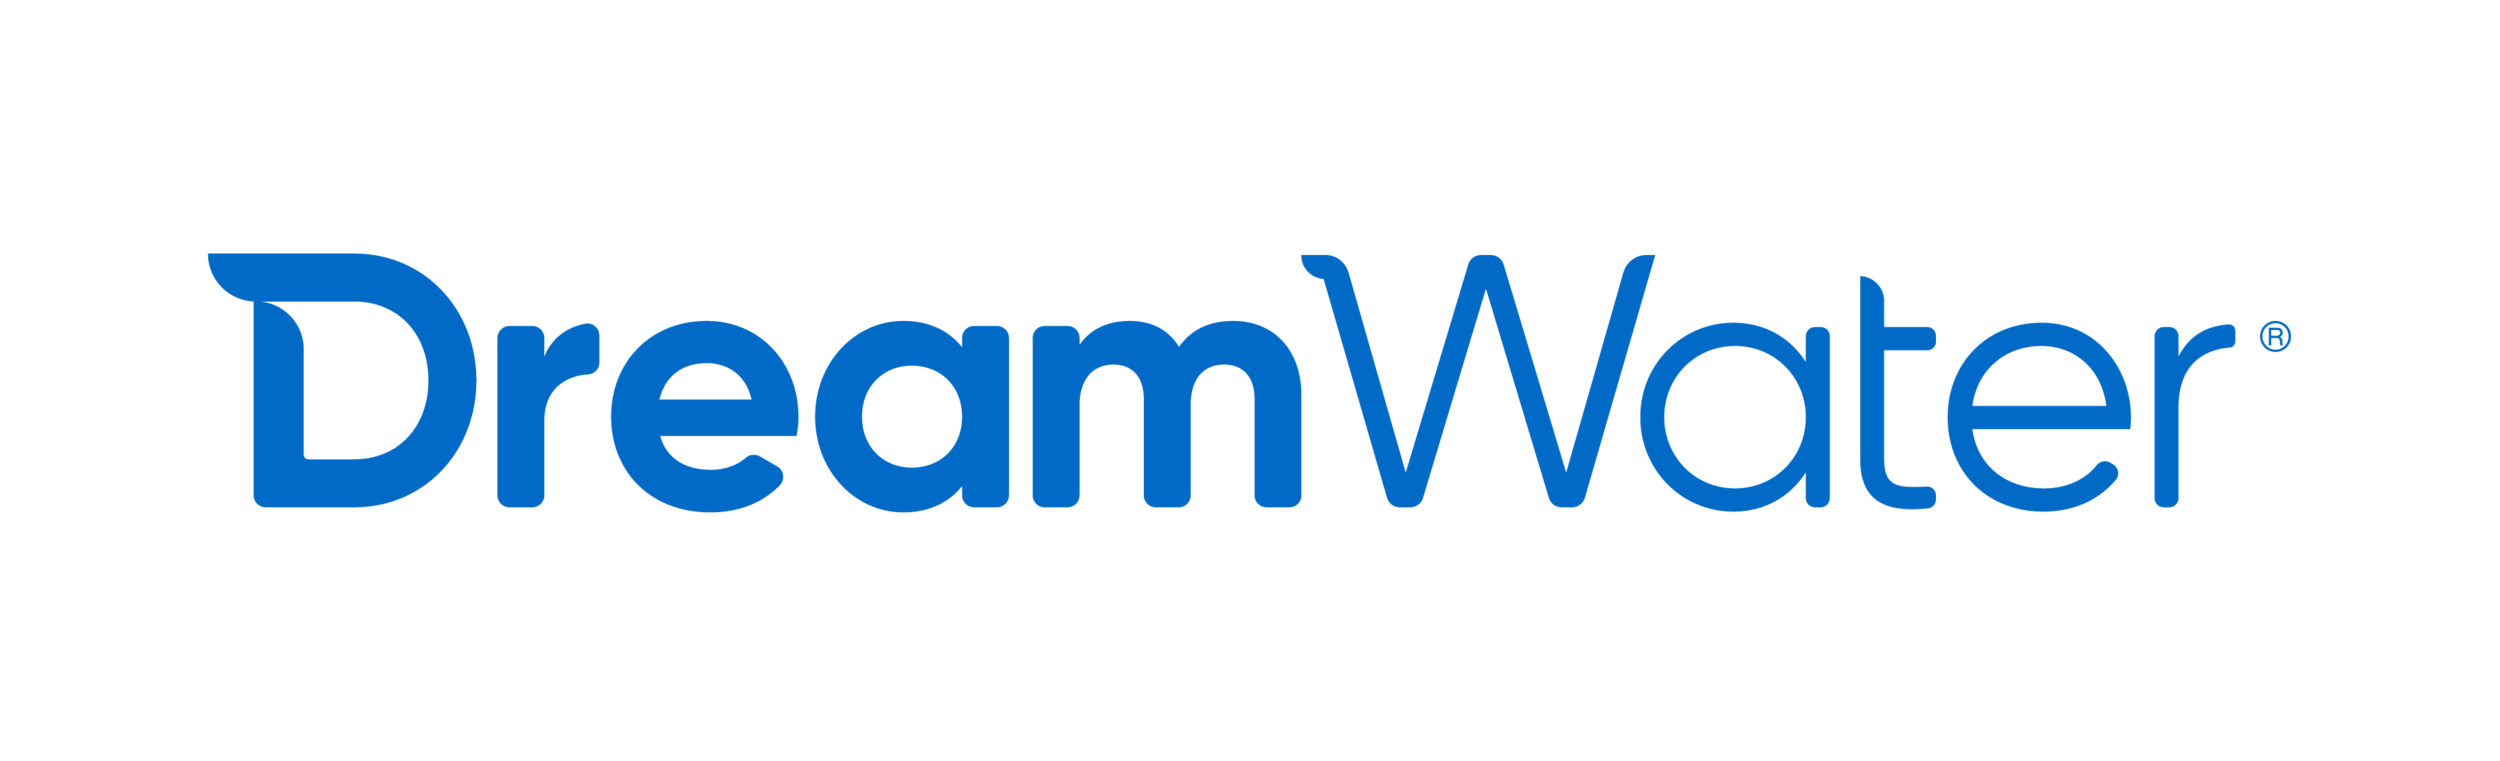 DreamWater_Logo_Horizontal_2175c_RGB-300ppi - Dominick Catena-Sommella.png